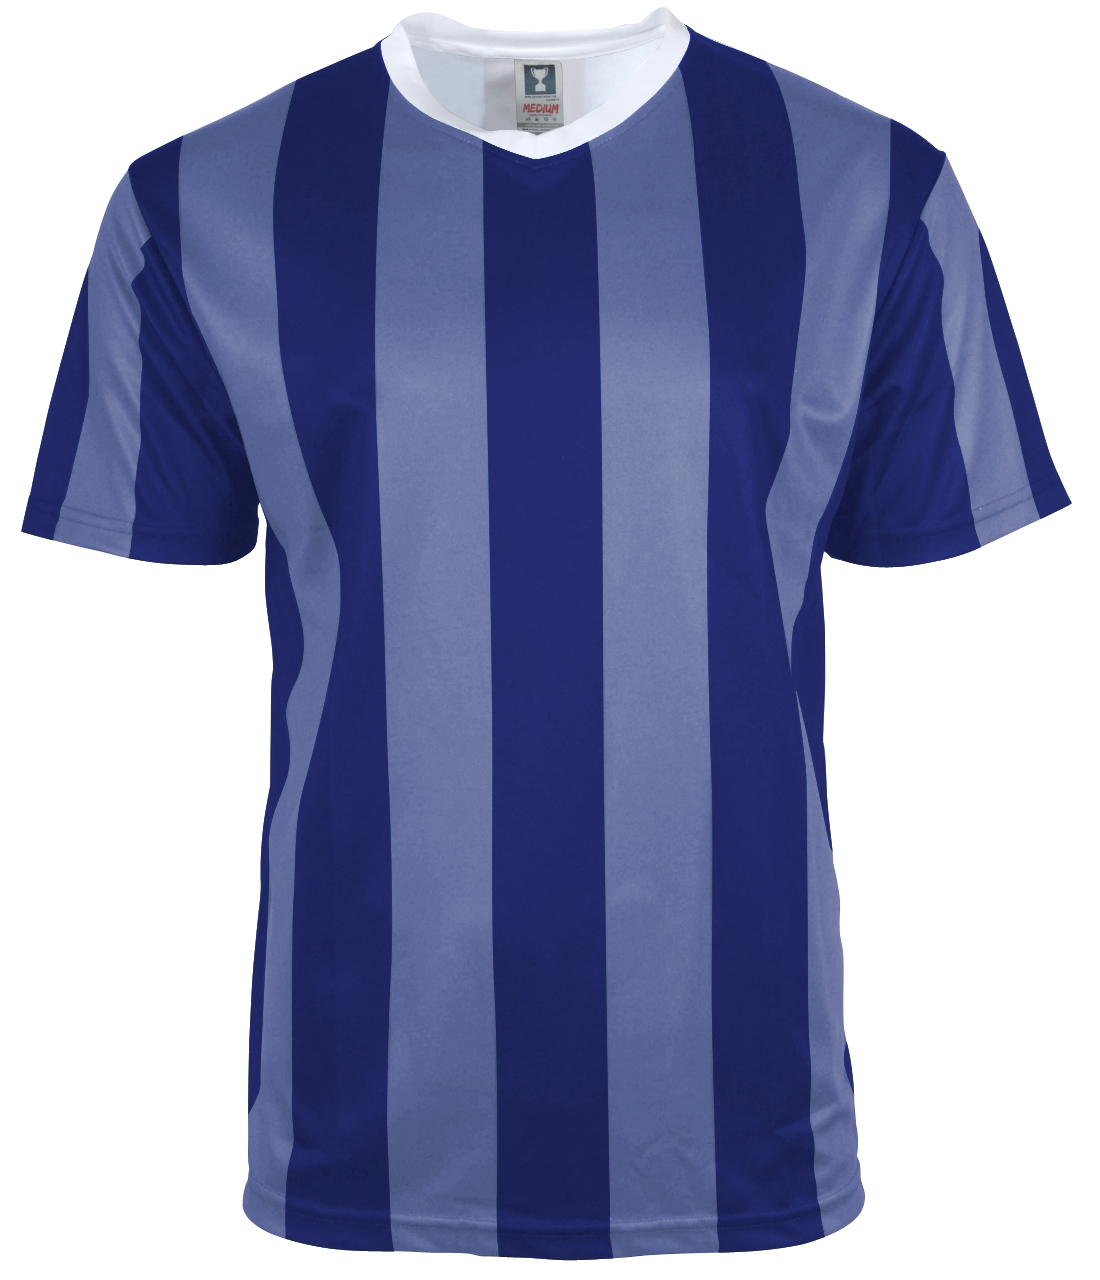 Picture of N3 SPORT Classic Soccer Youth Jersey